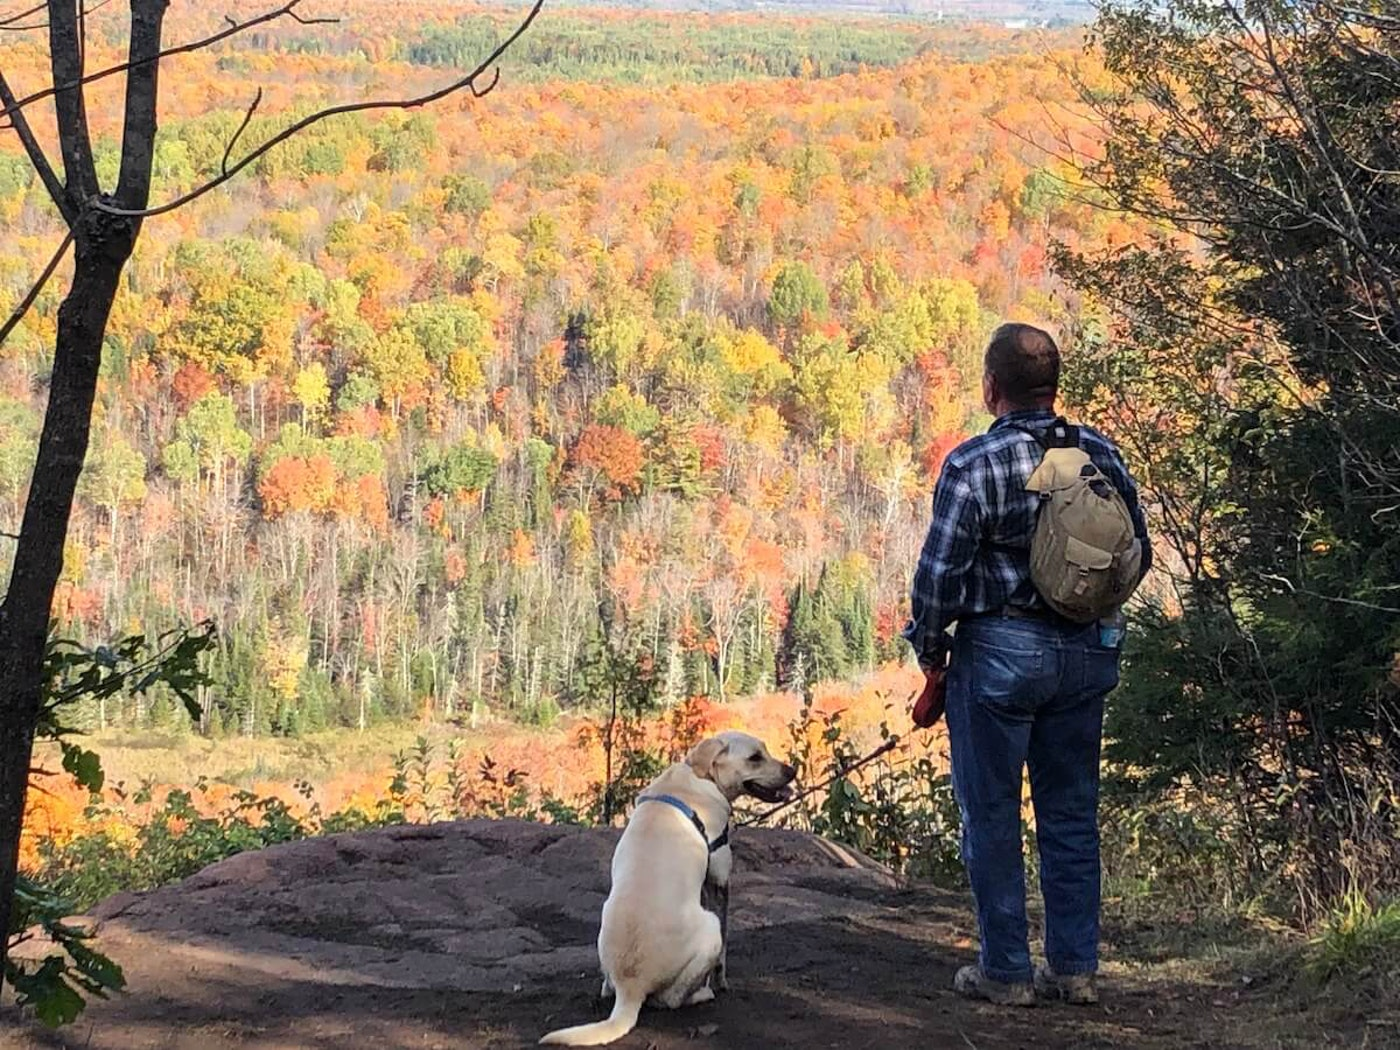 Darla Dernovsek submitted this photo of her husband Mike and their dog Sunny on a hike at St. Peter's Dome near Ashland.